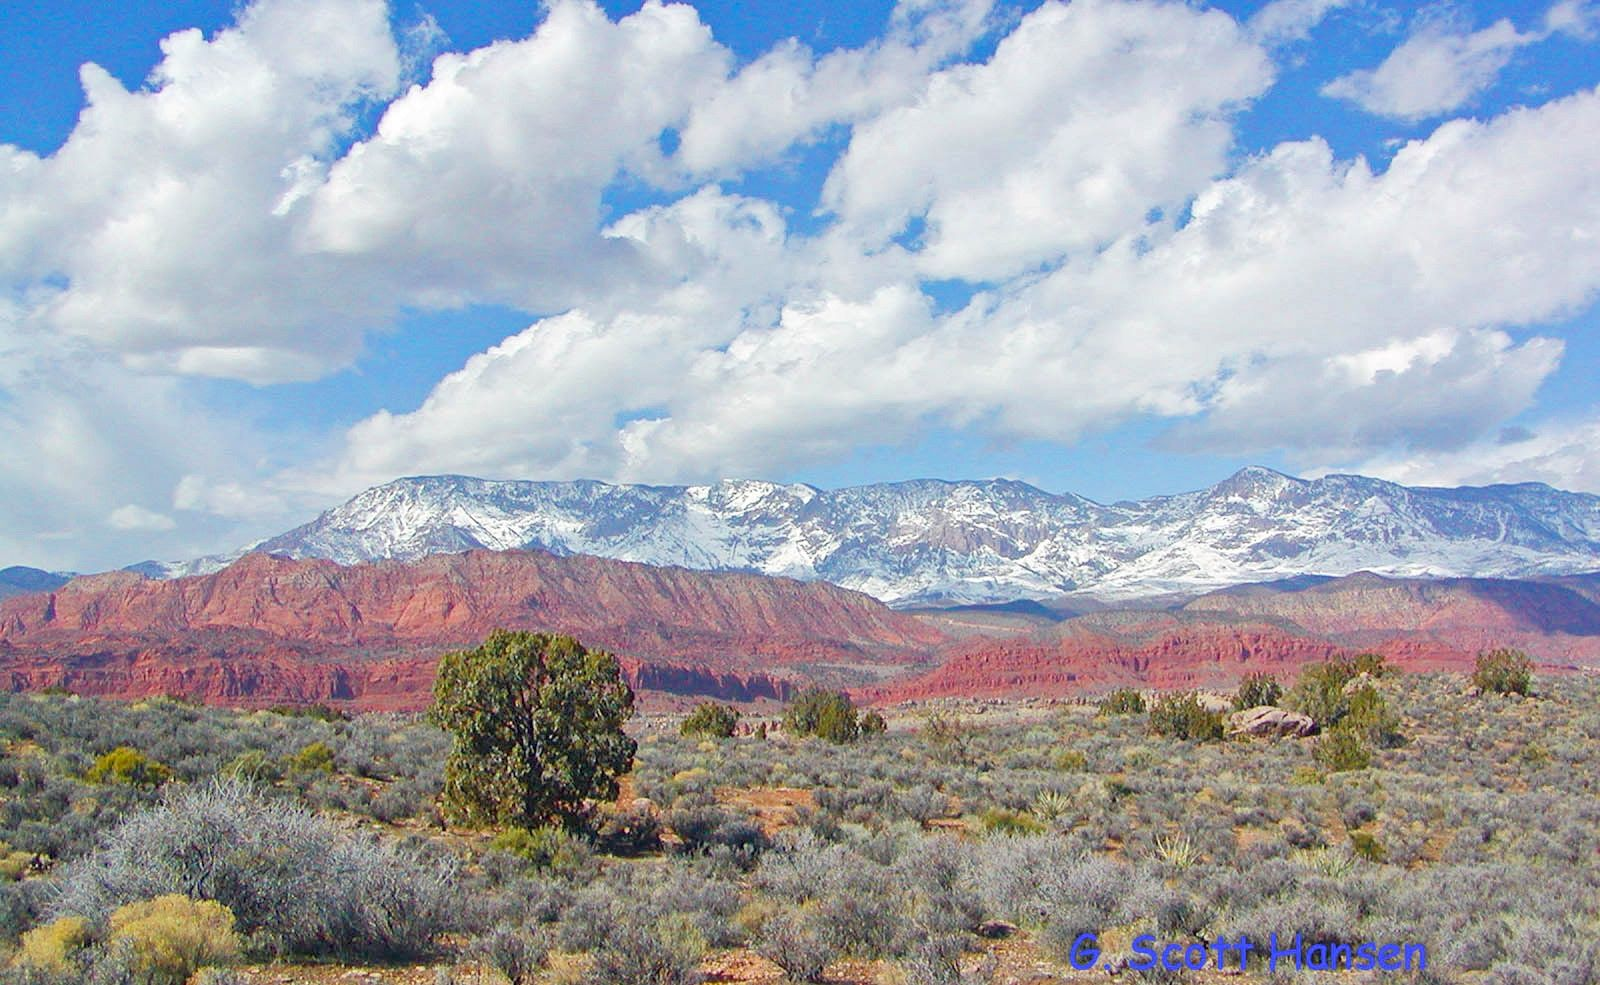 Pine Valley Mountains and the adjacent red rock canyons of ...